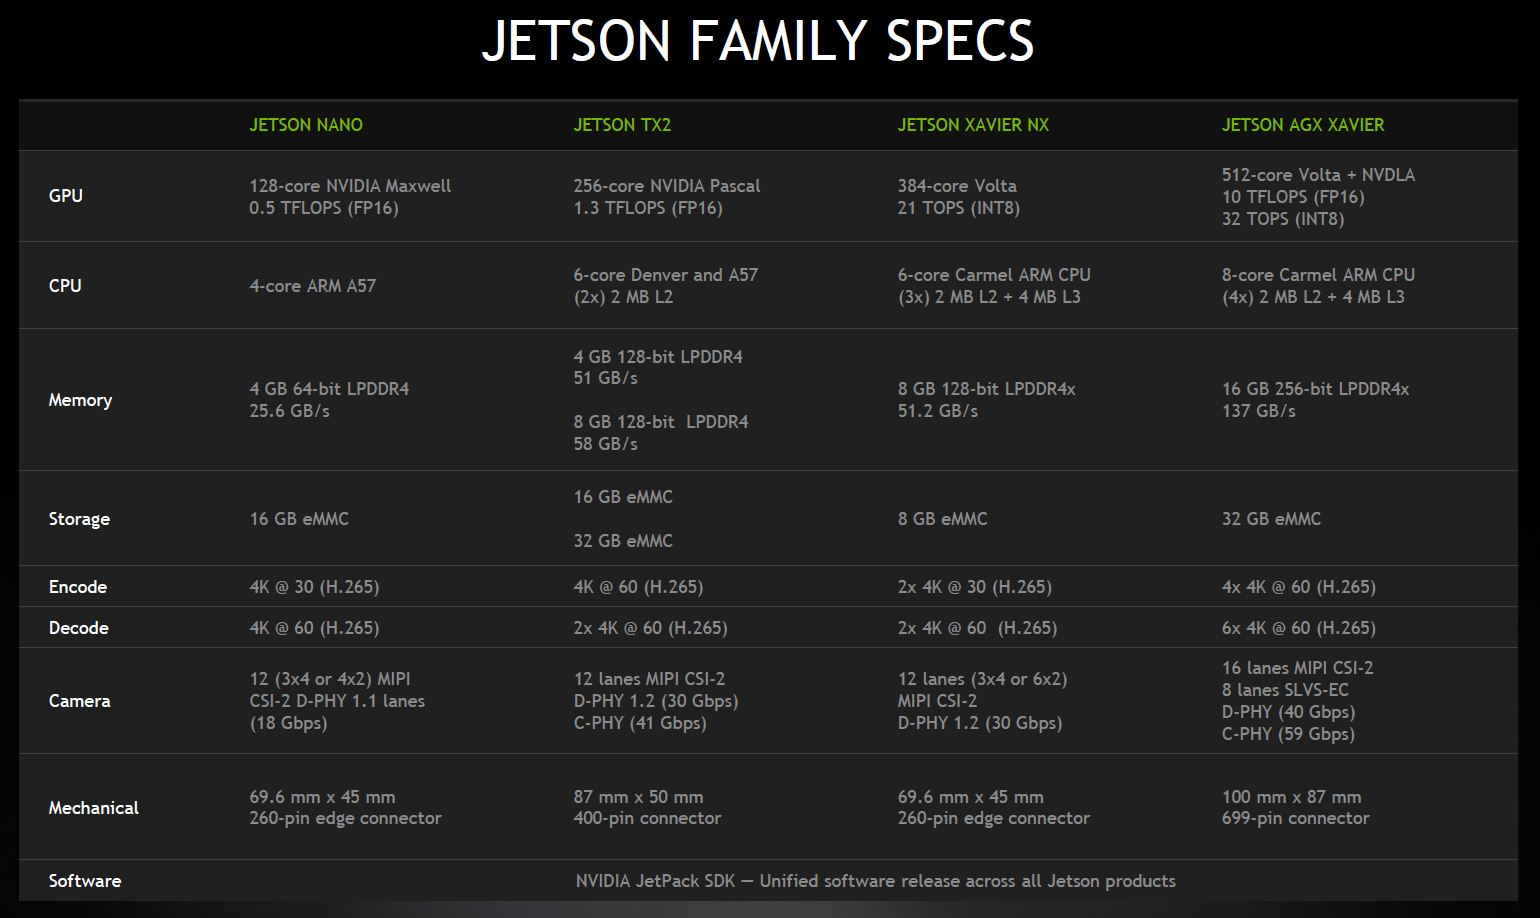 NVIDIA Jetson Xavier NX And New Jetson Family Specs